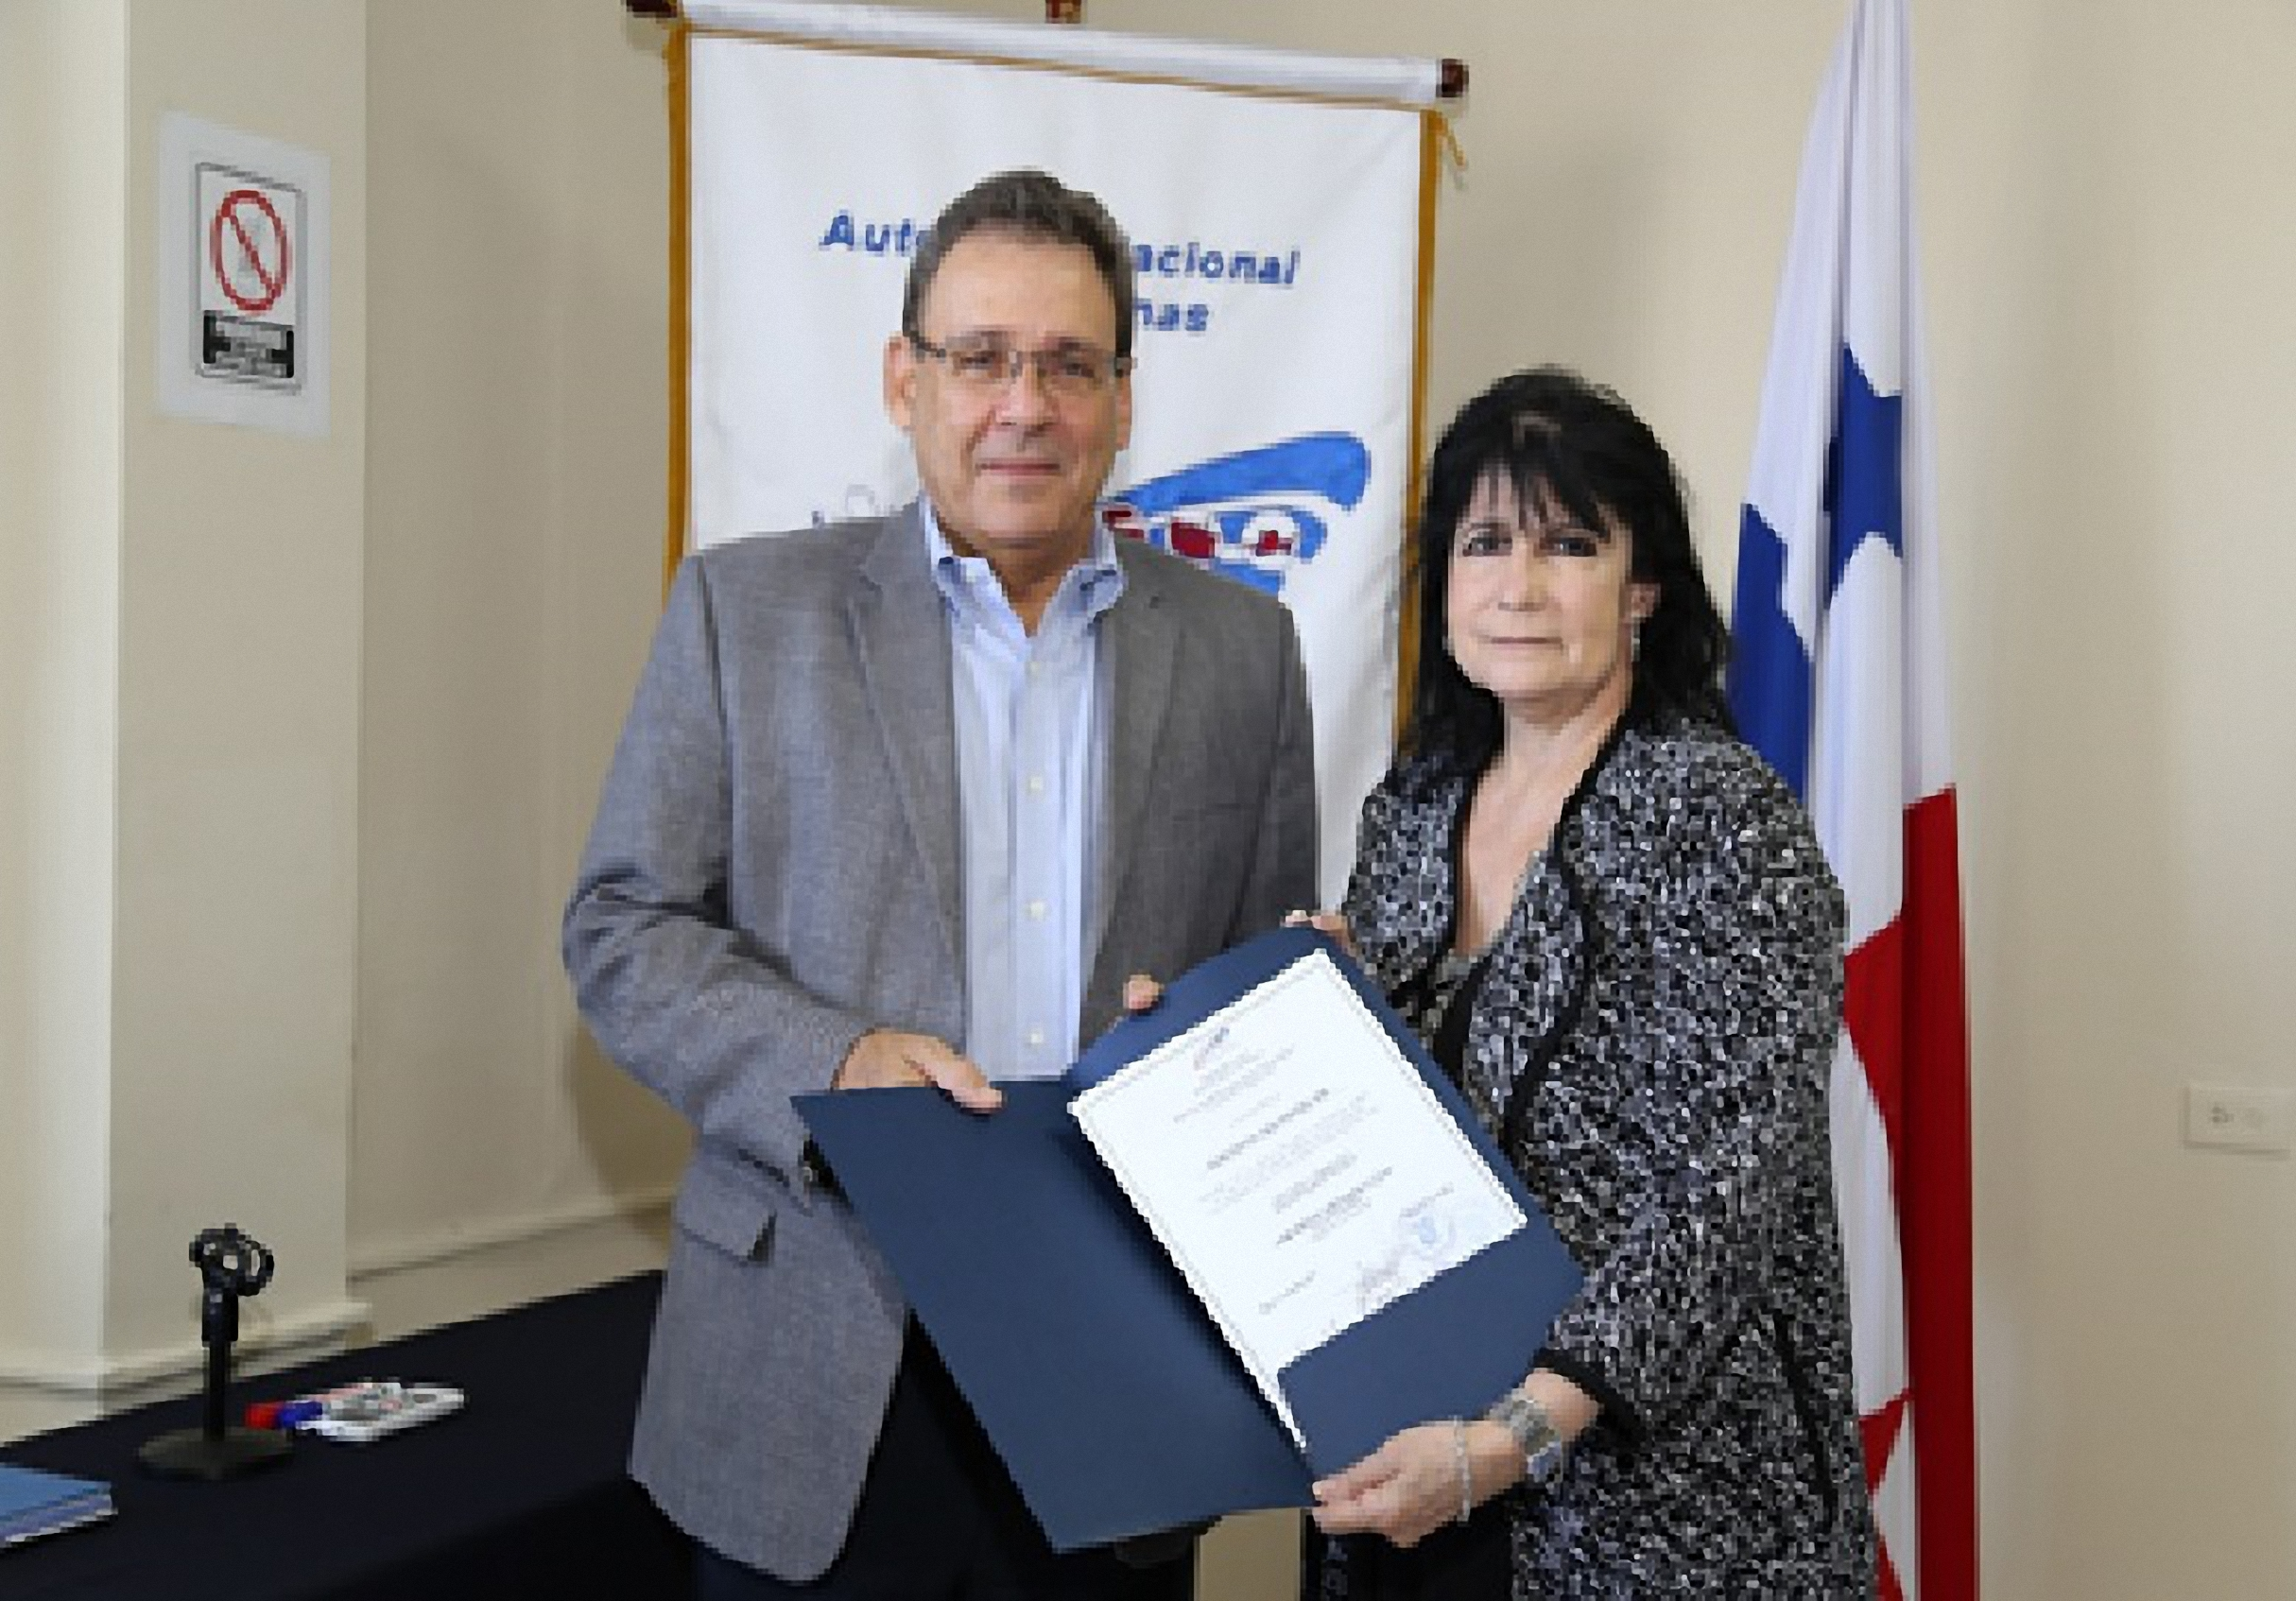 José Gómez Núñez, National Director of Panama Customs Authority and Gioconda Bazán, Canal Movers & Logistics Operation Manager